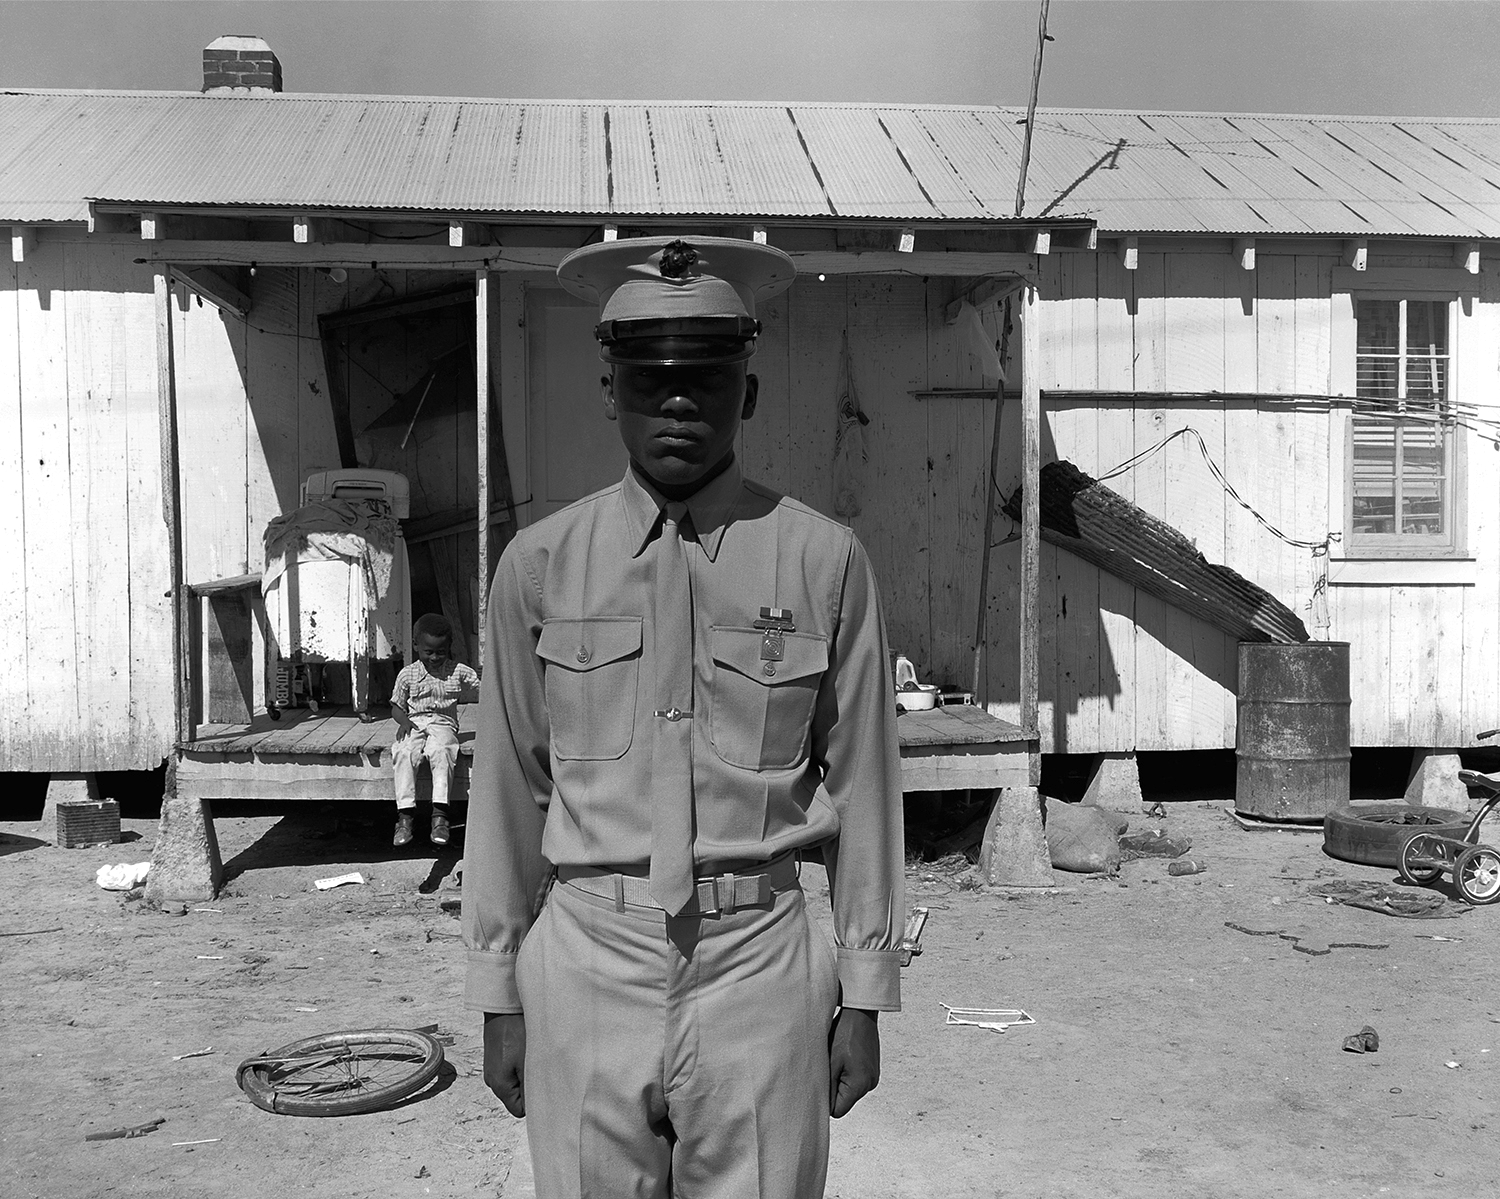 U.S. Marine on leave  Hughes, AR.  1970